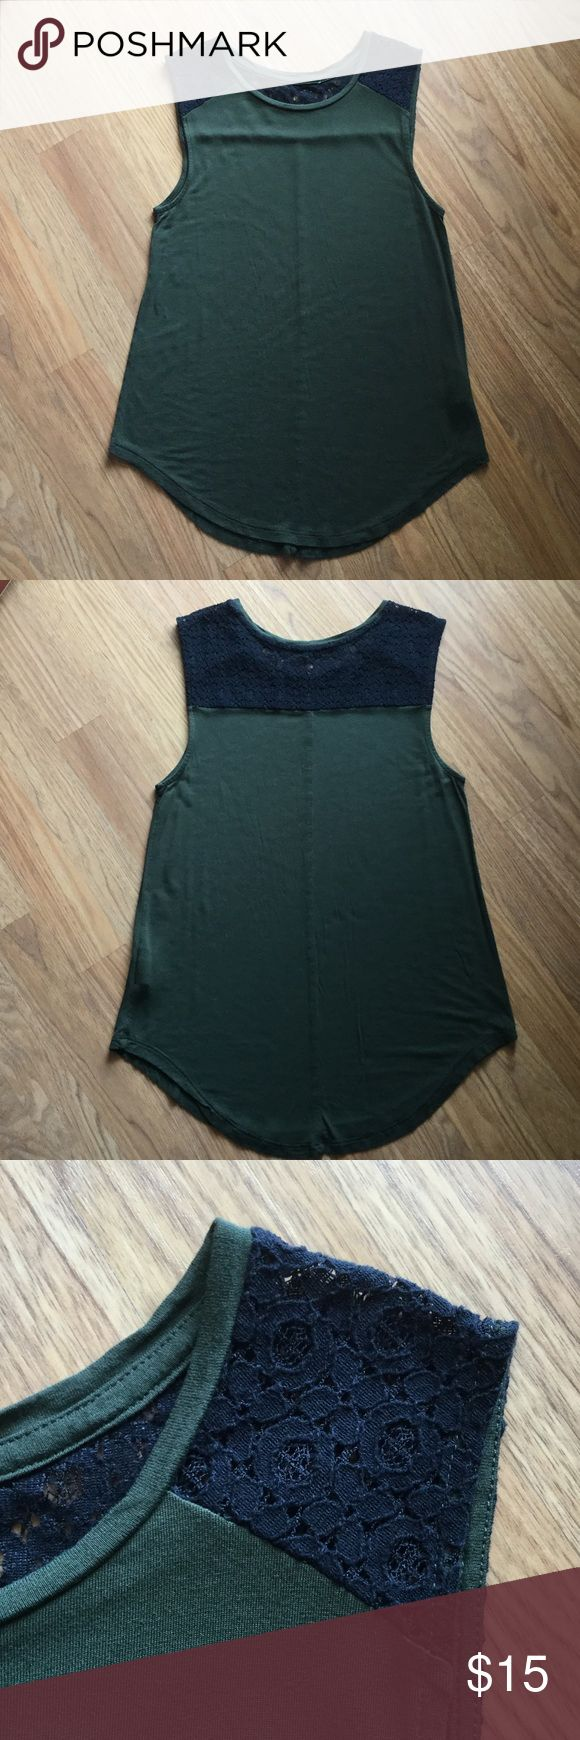 EUC Old Navy Tank Top Green With Black Lace Excellent Condition! Only Worn Once. Adorable  Green Tank Top With Black Lace. Old Navy Tops Tank Tops